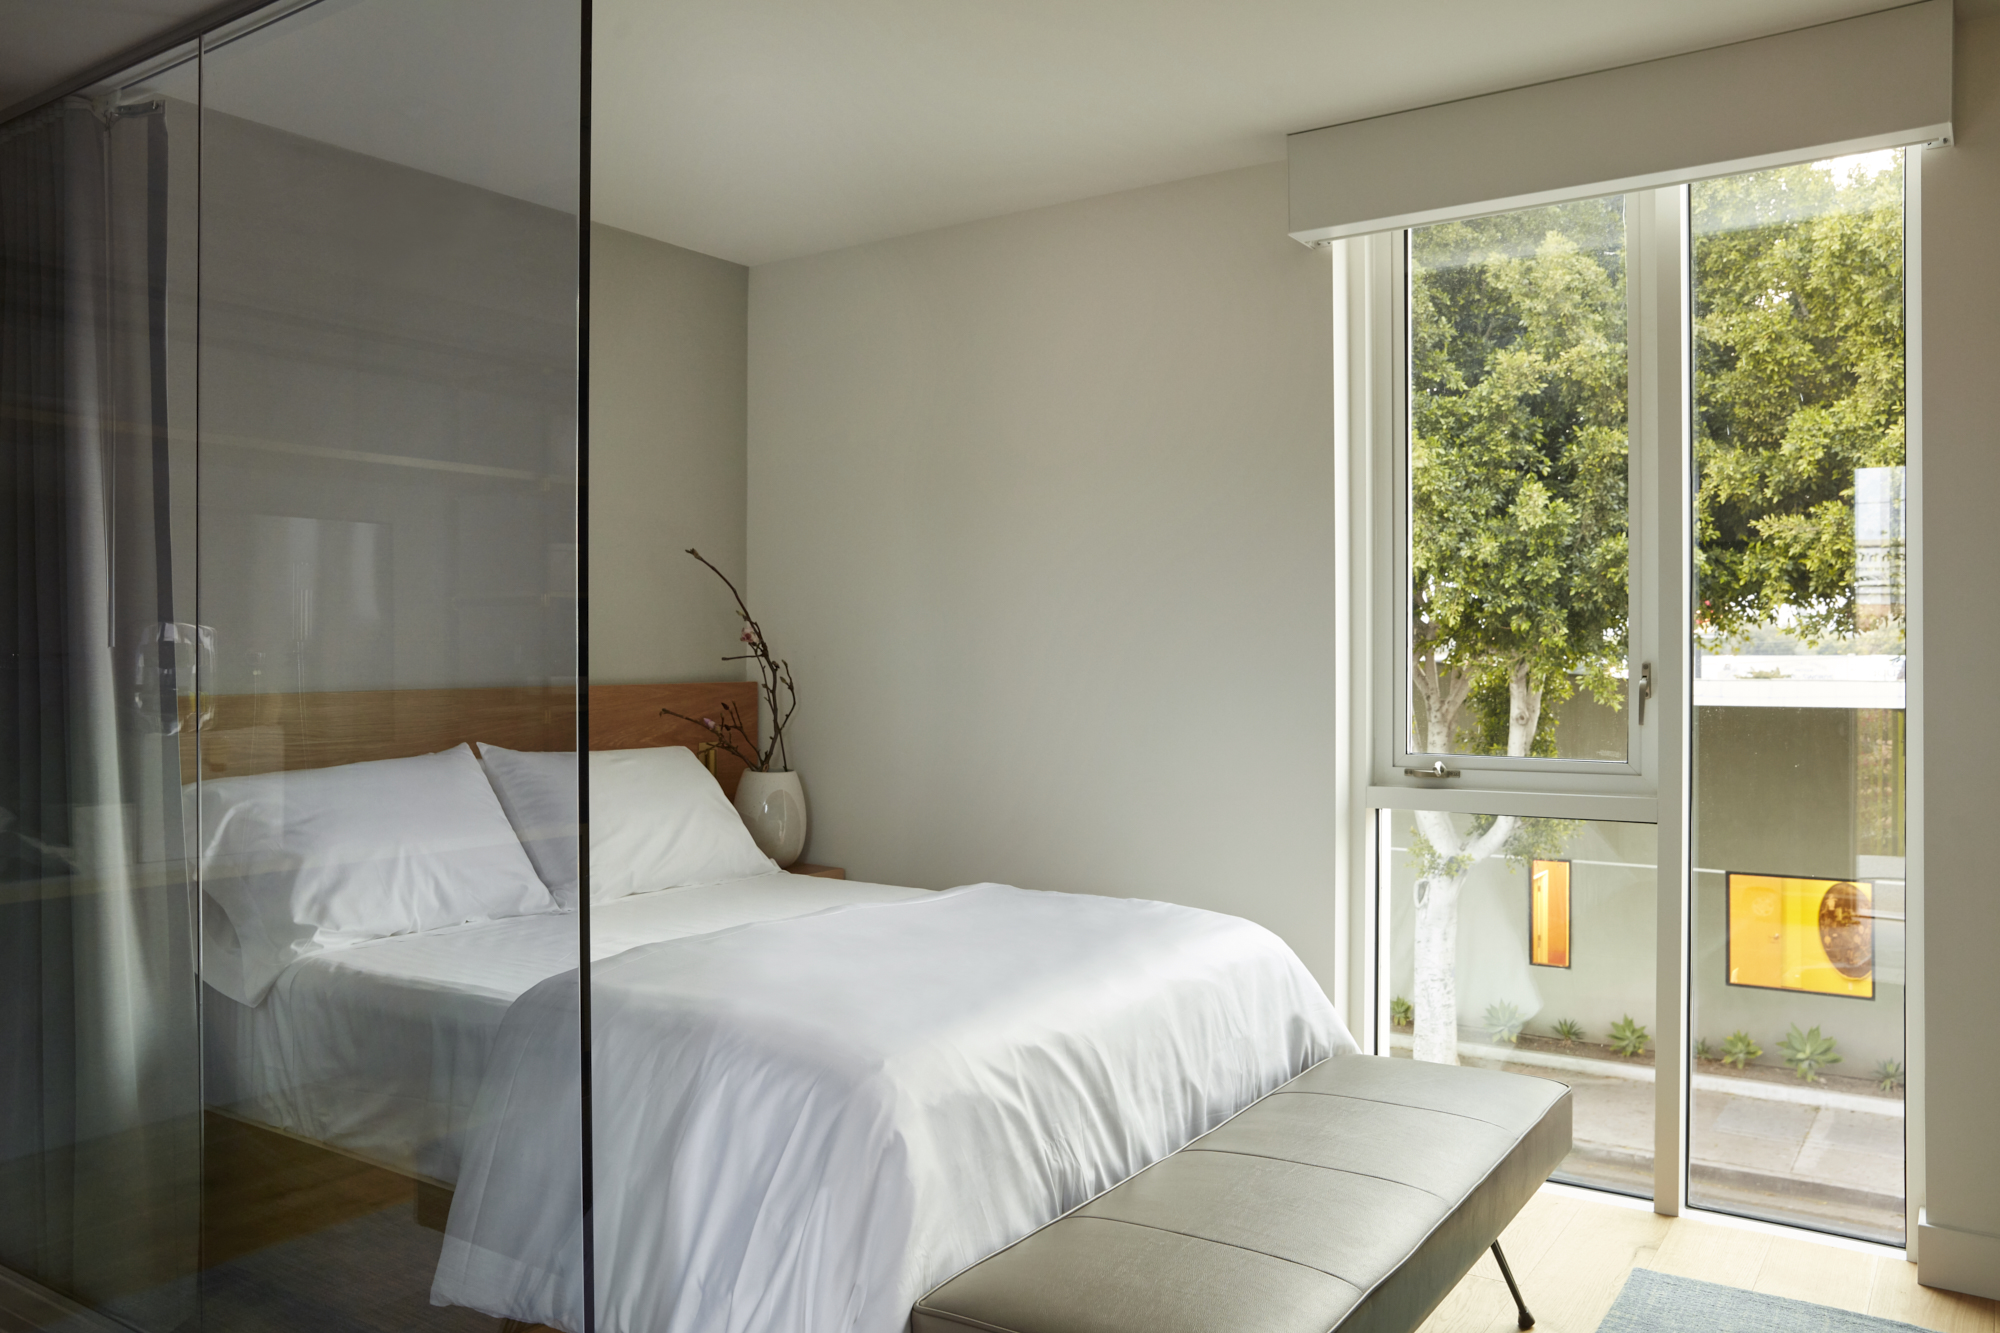 Mayumi – A New Hotel Experience in Culver CIty